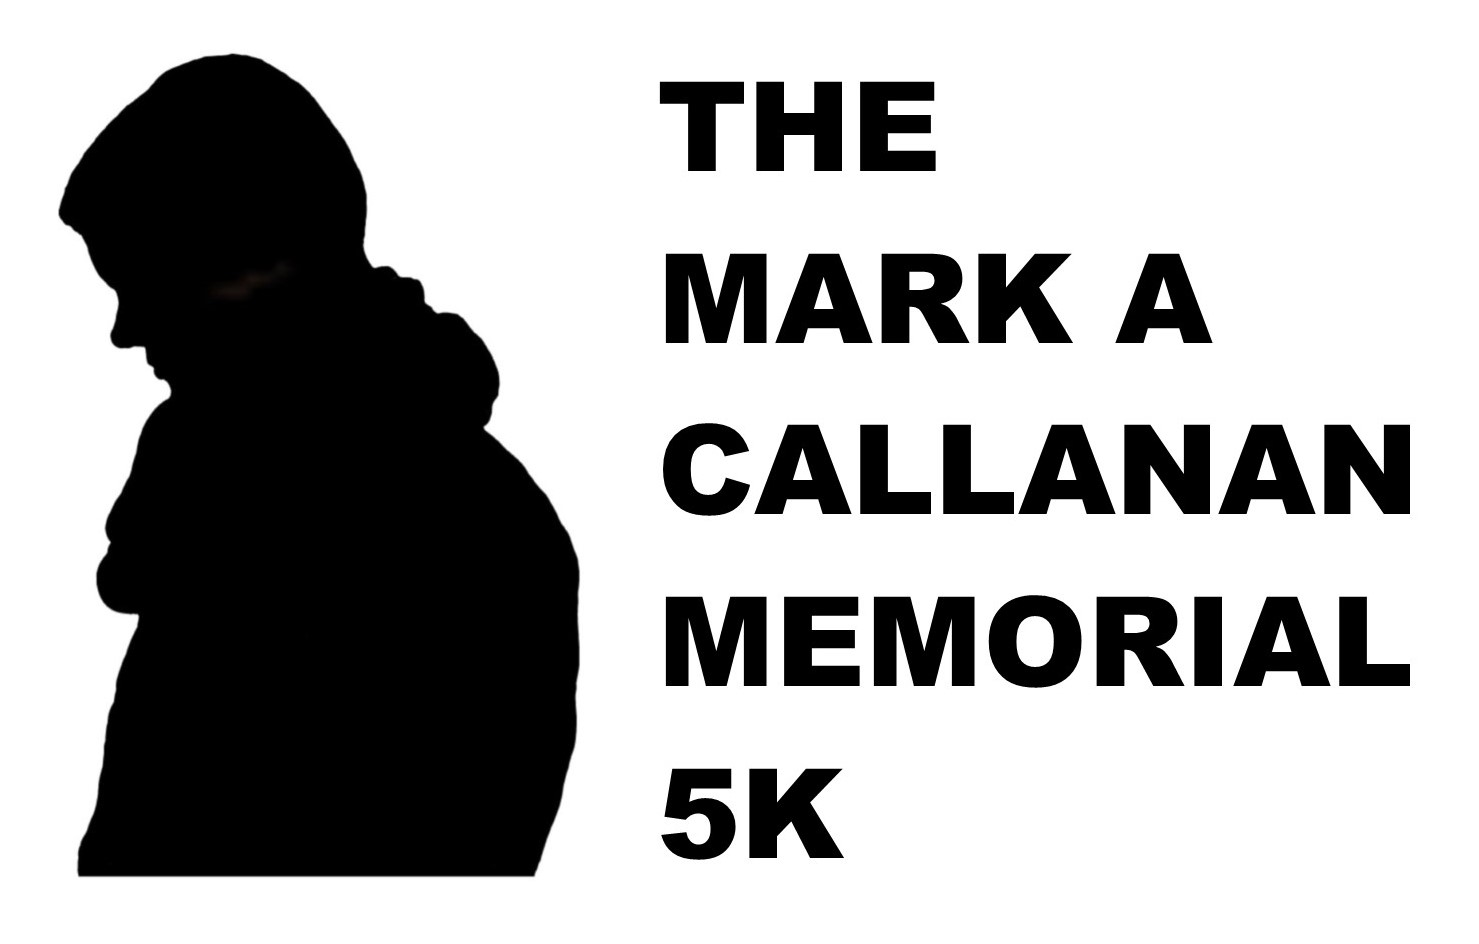 The Mark A Callanan Memorial 5K